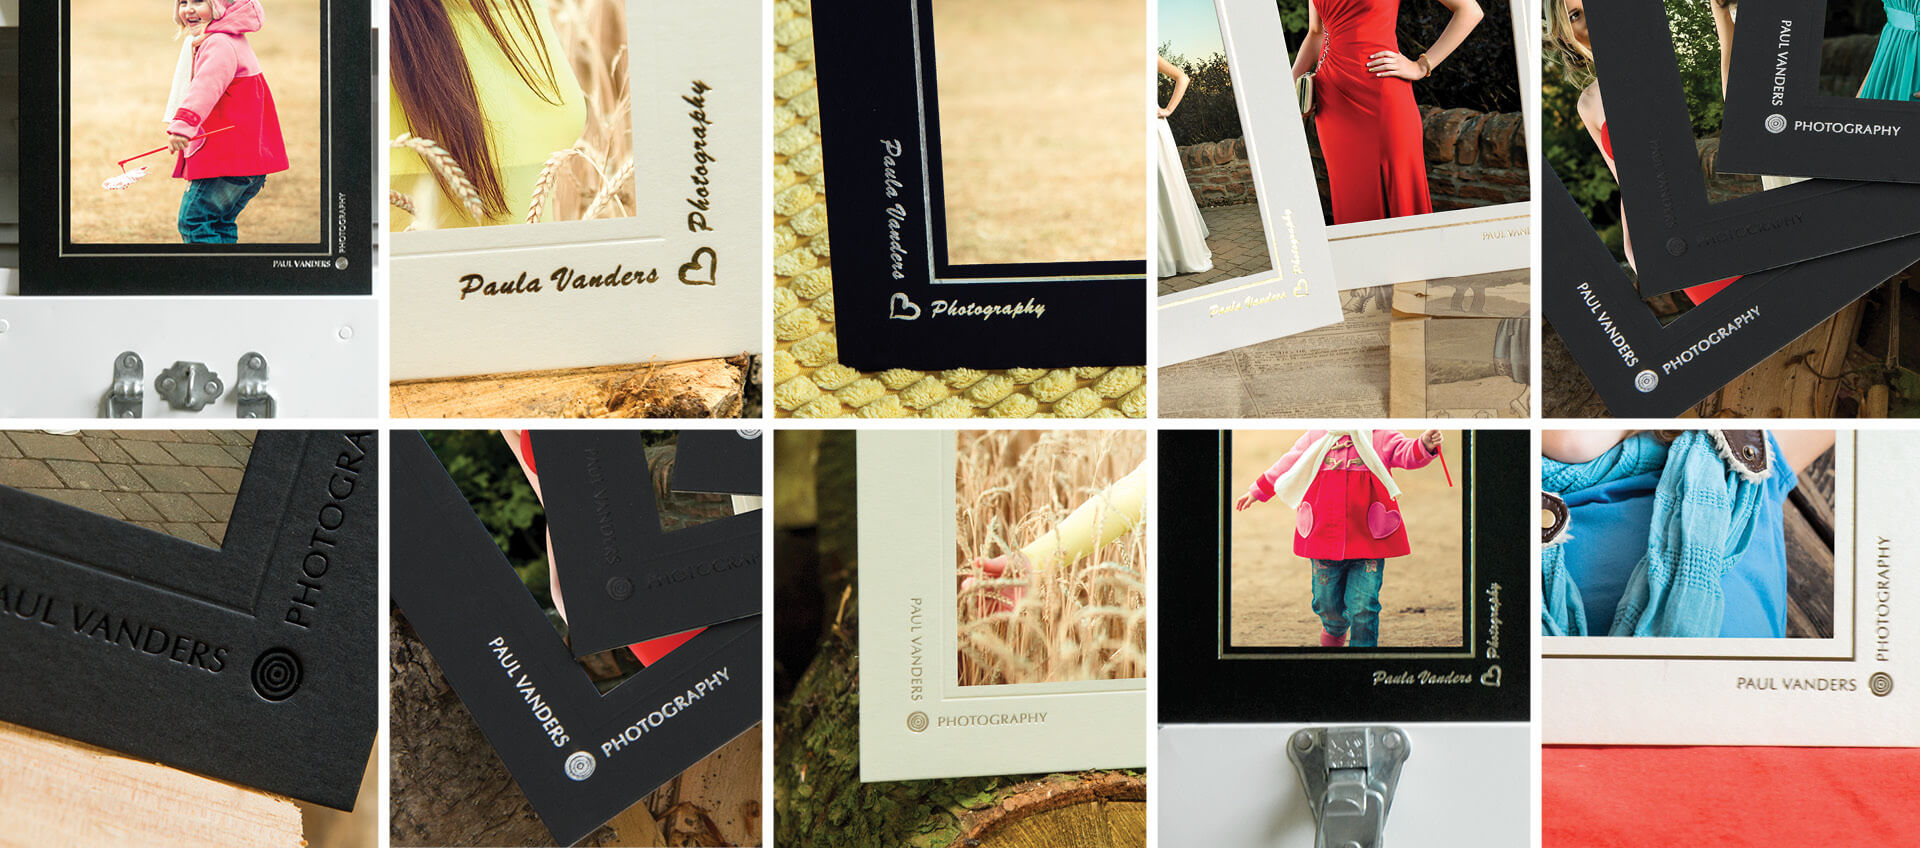 Brand your mounts and folders to promote your photography business